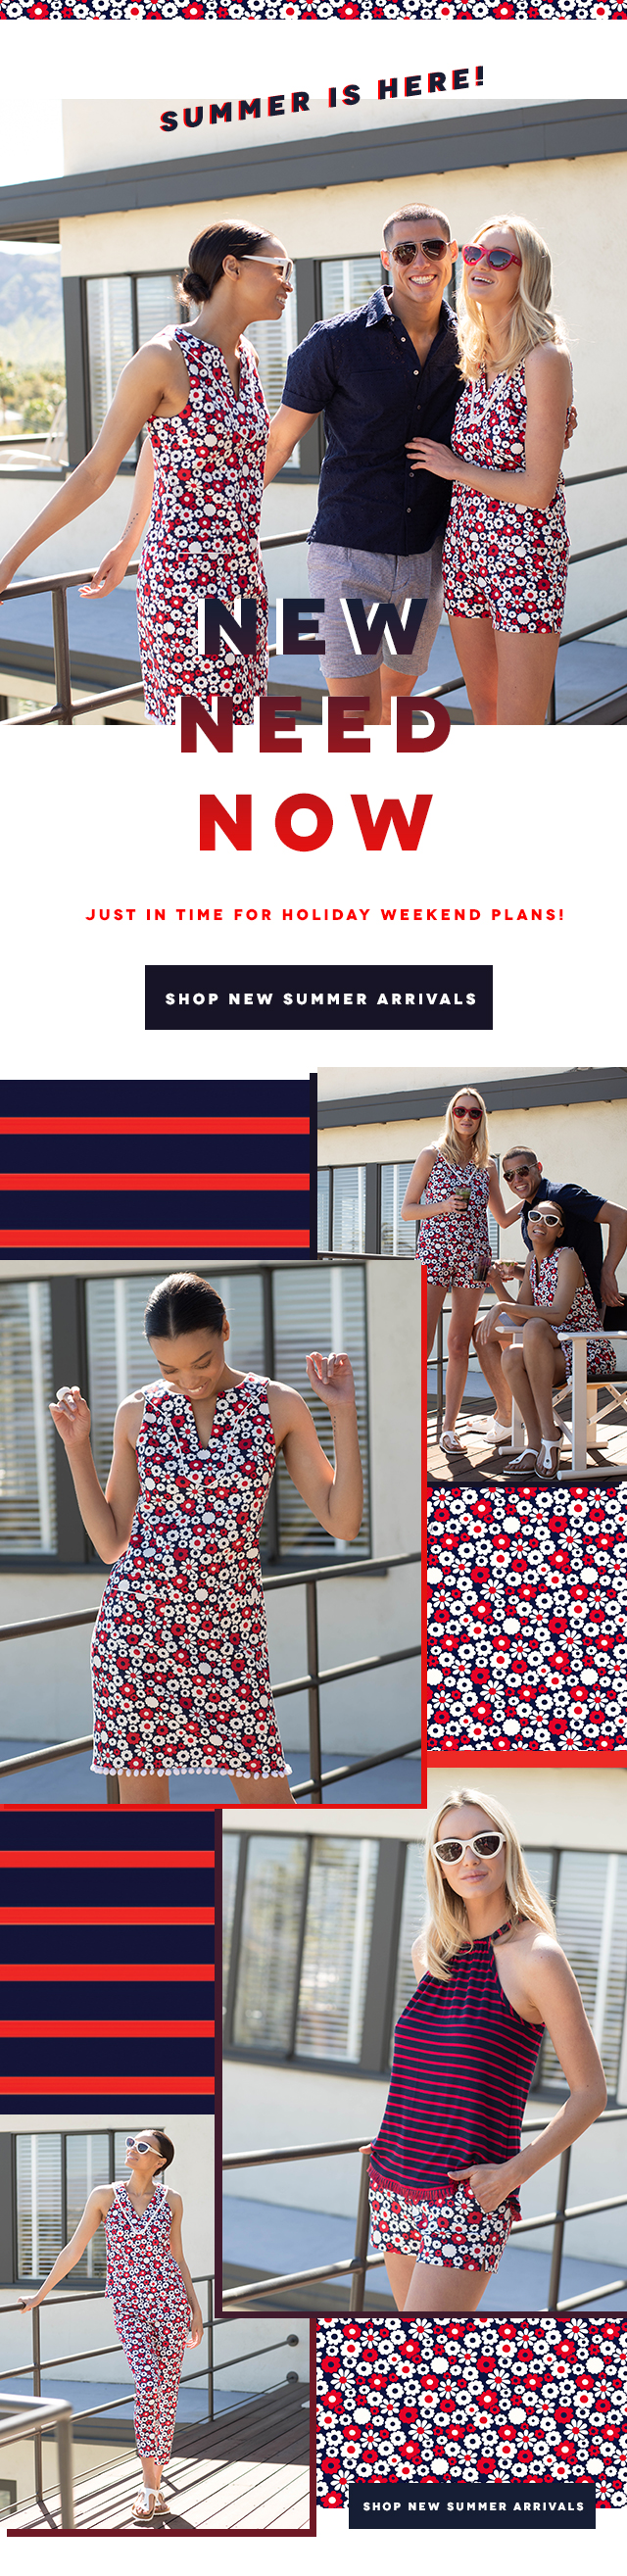 Summer is Here! NEW. NOW. NEED. Shop Our Newest Drop!!